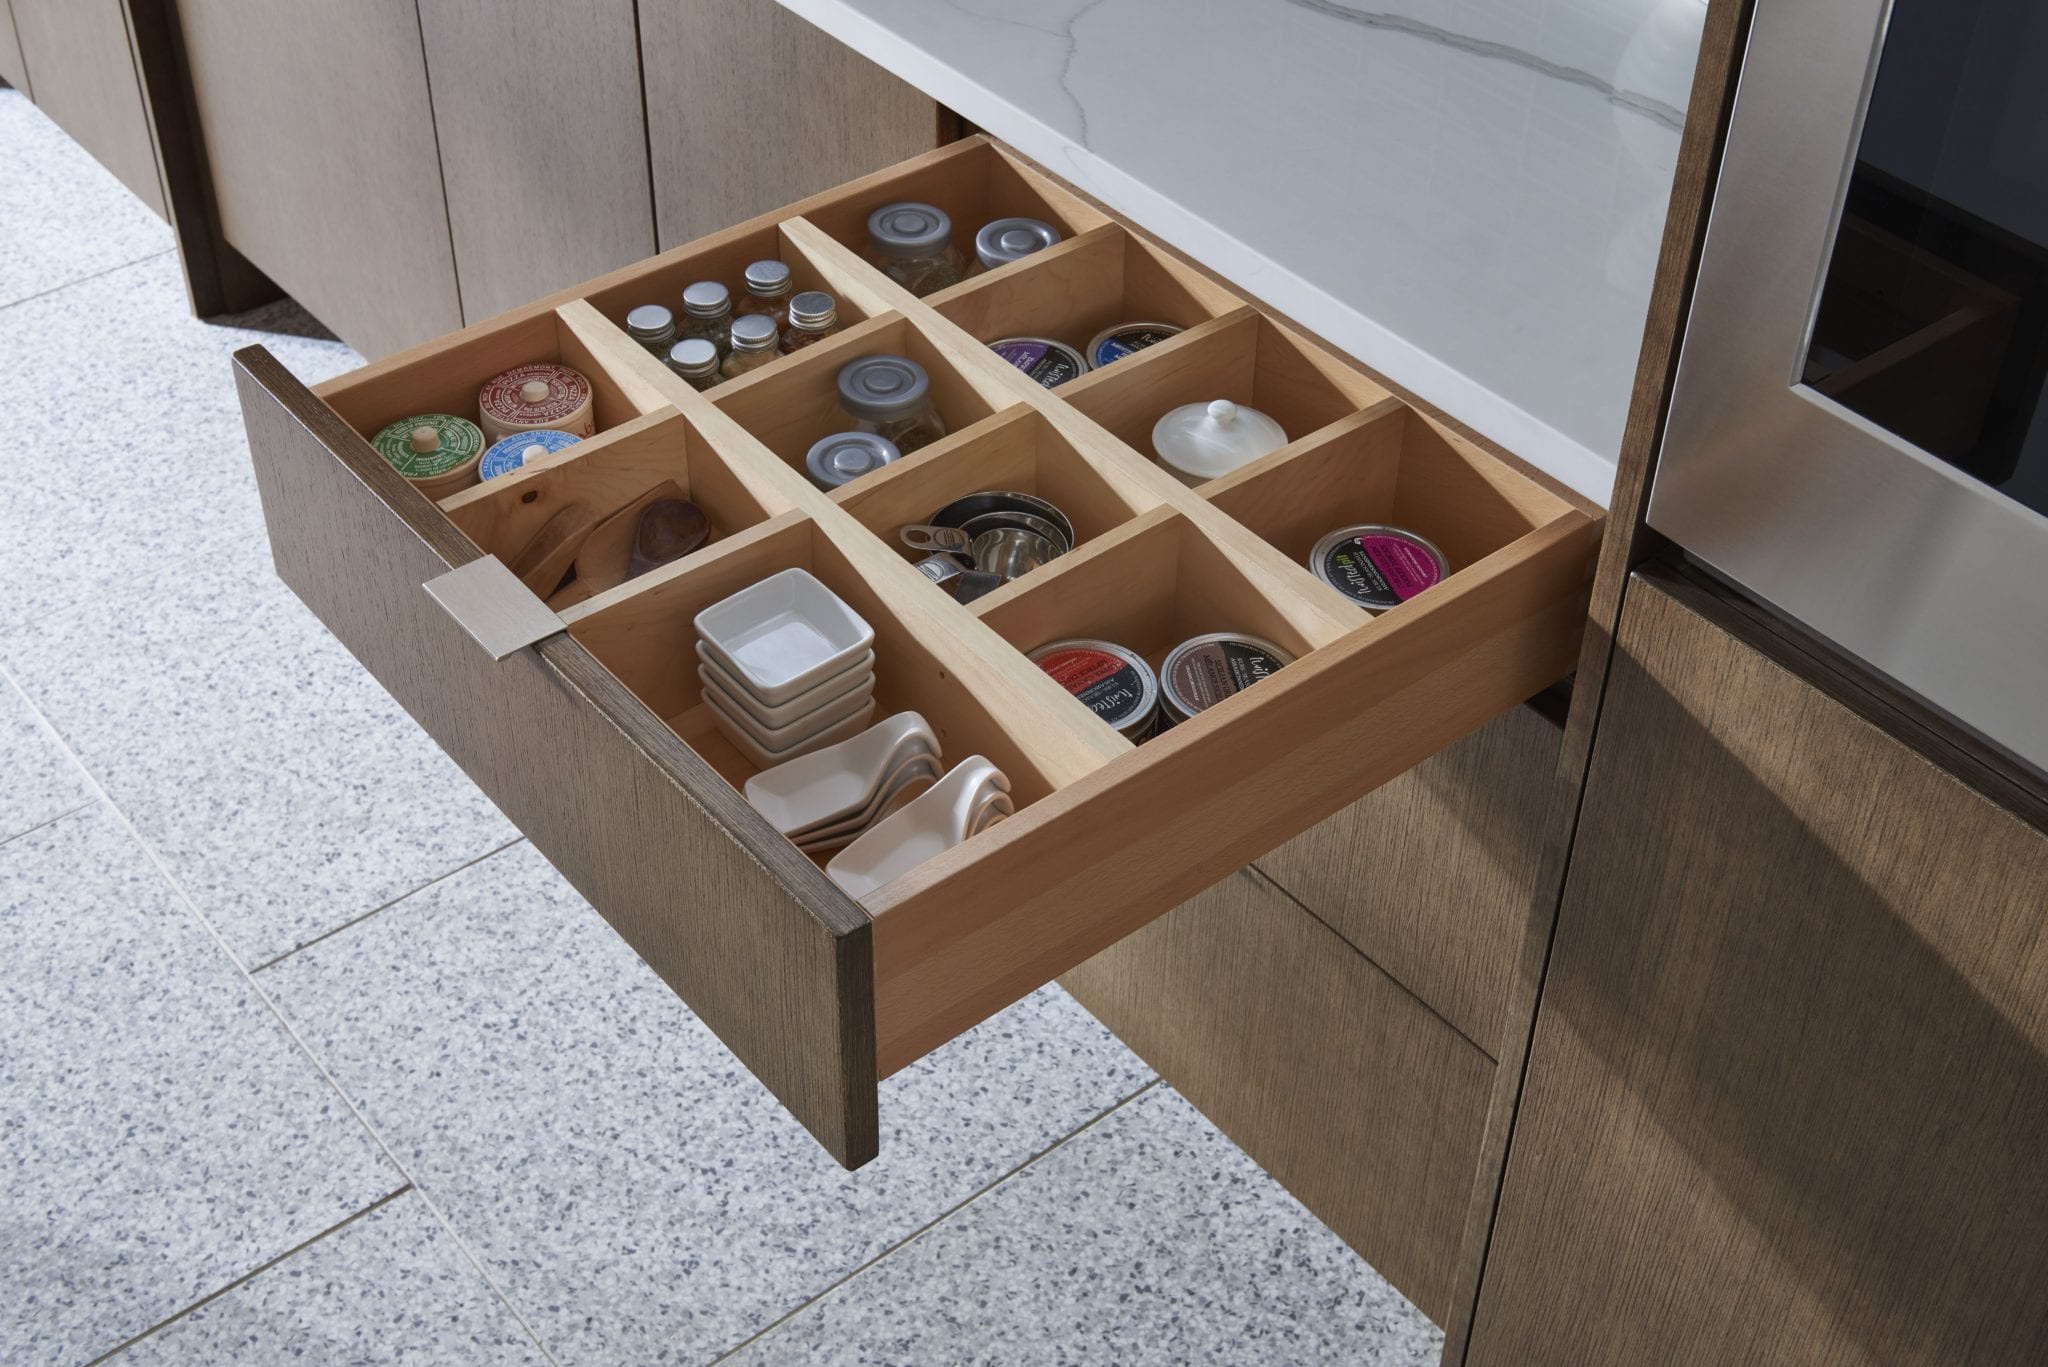 Tacoma WA Cabinets with drawer organizer by Medallion Cabinetry